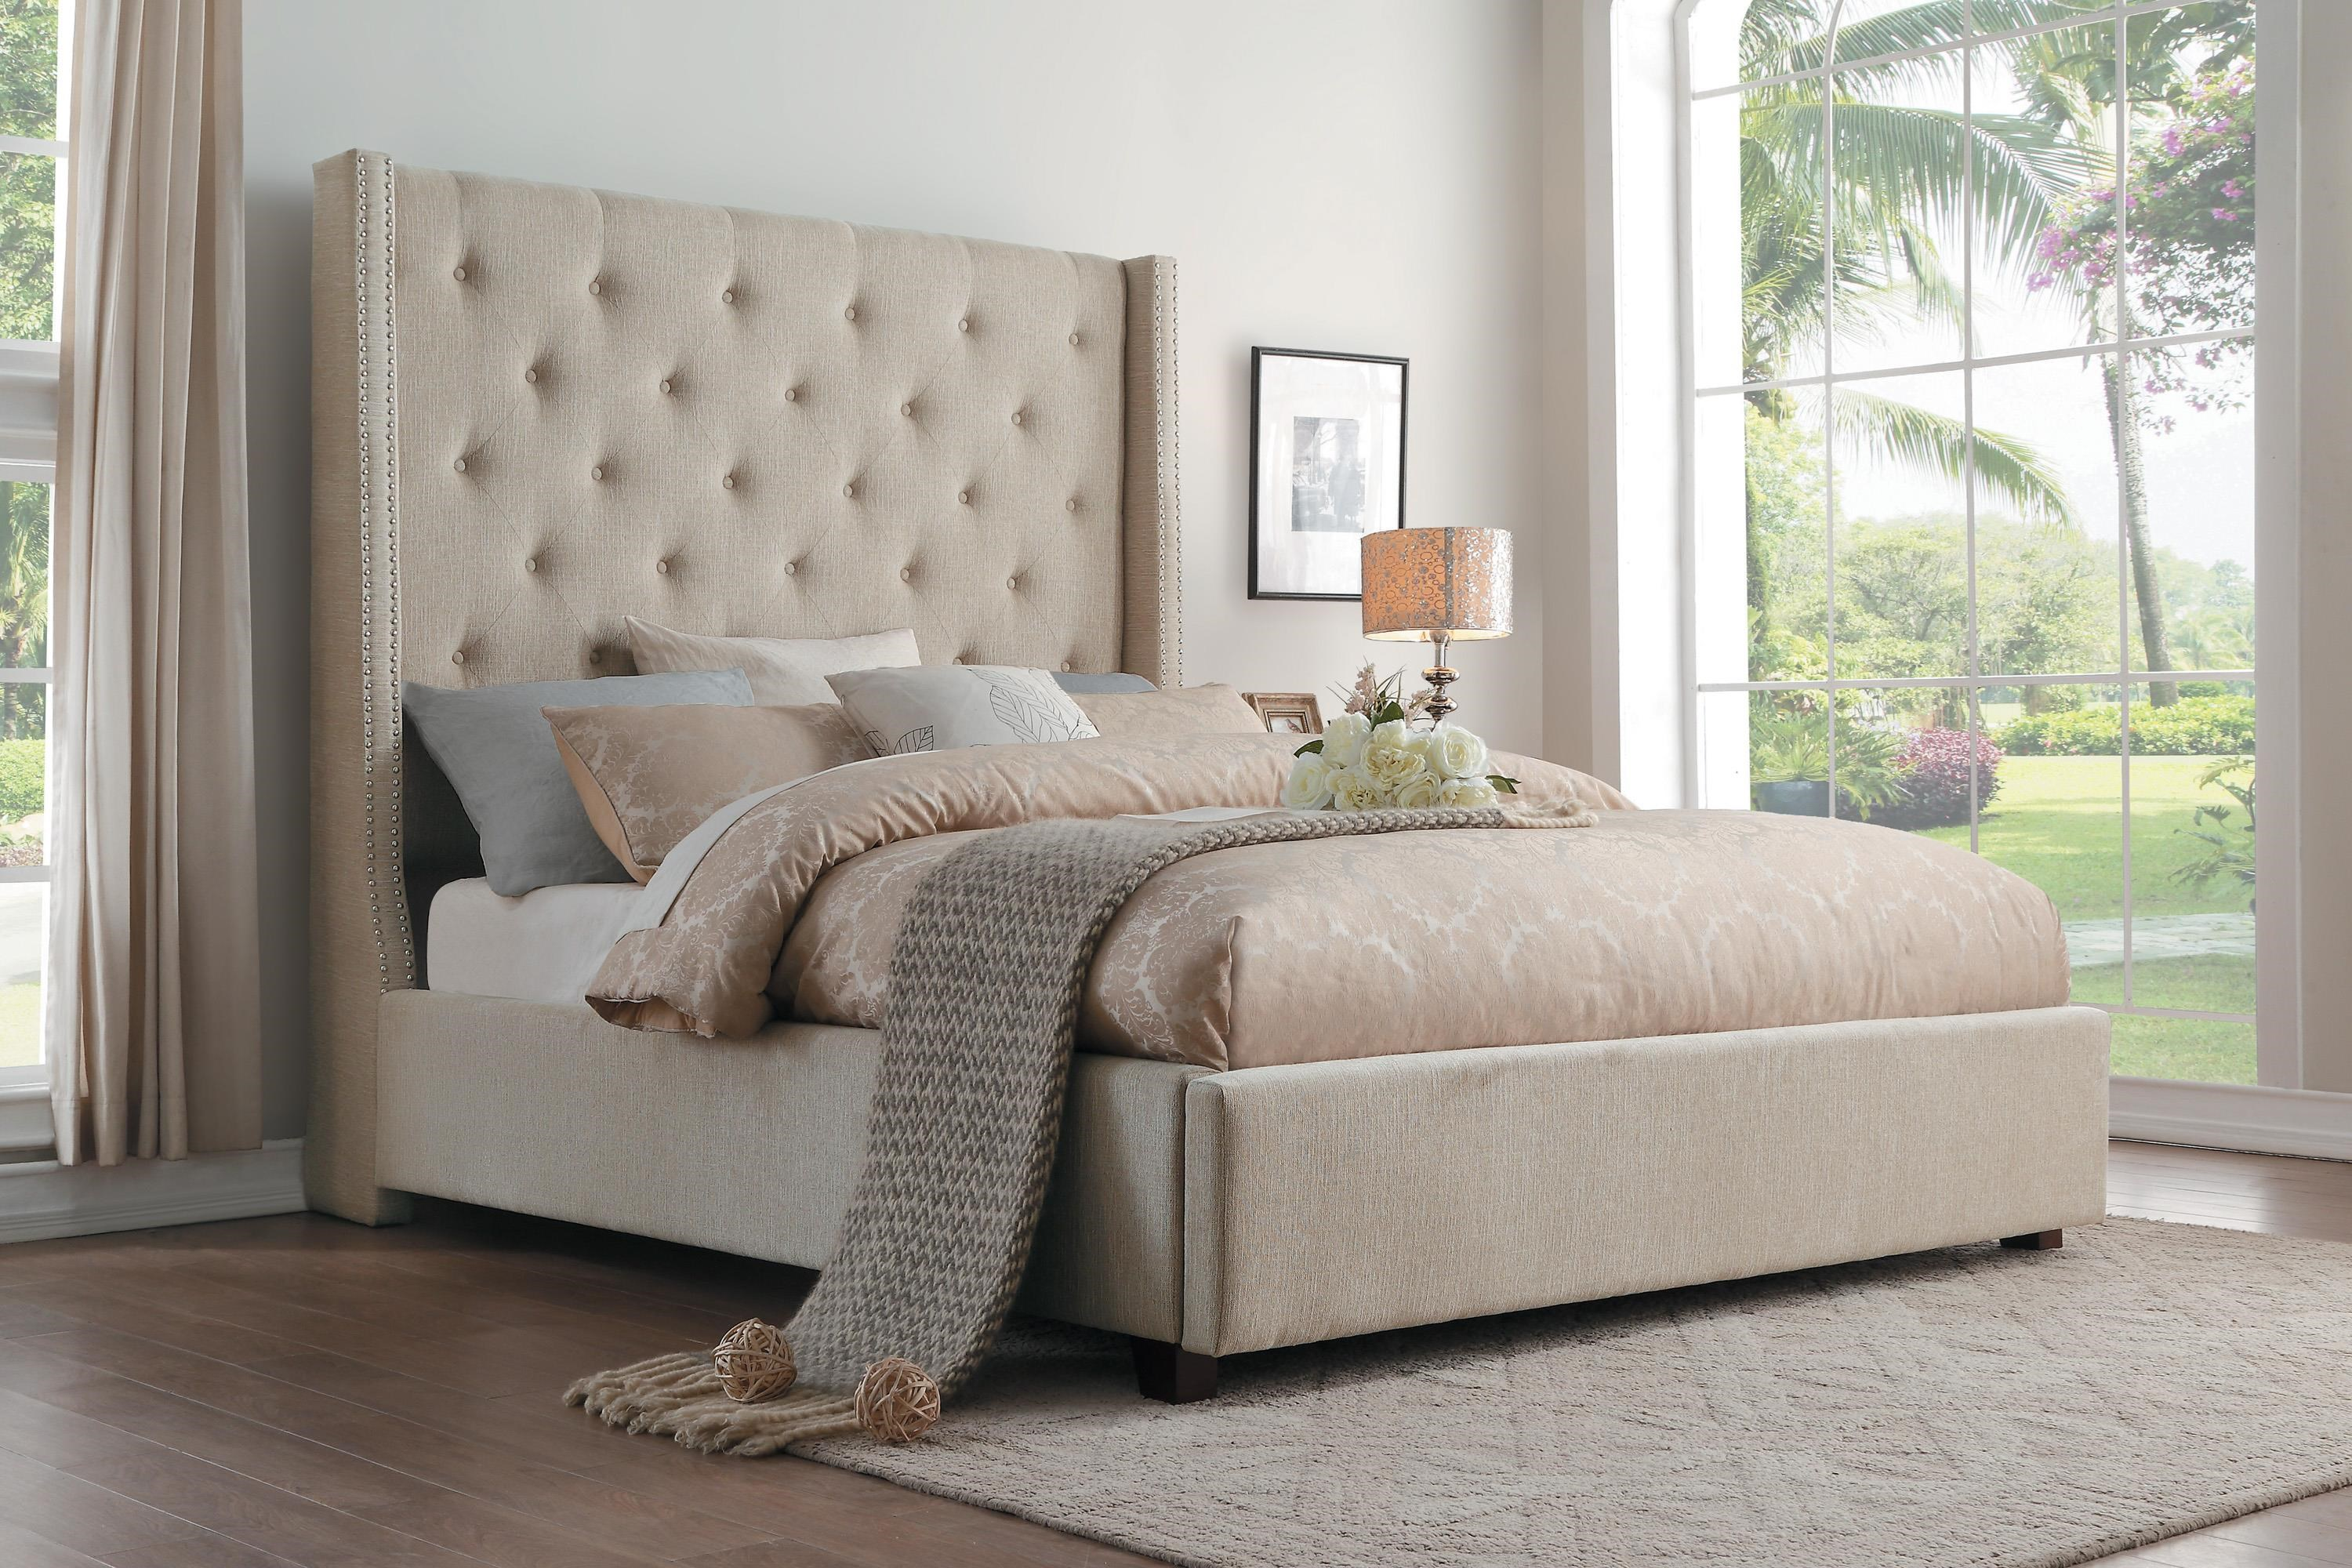 Geneva Queen Upholstered Bed by Home Style at Walker's Furniture